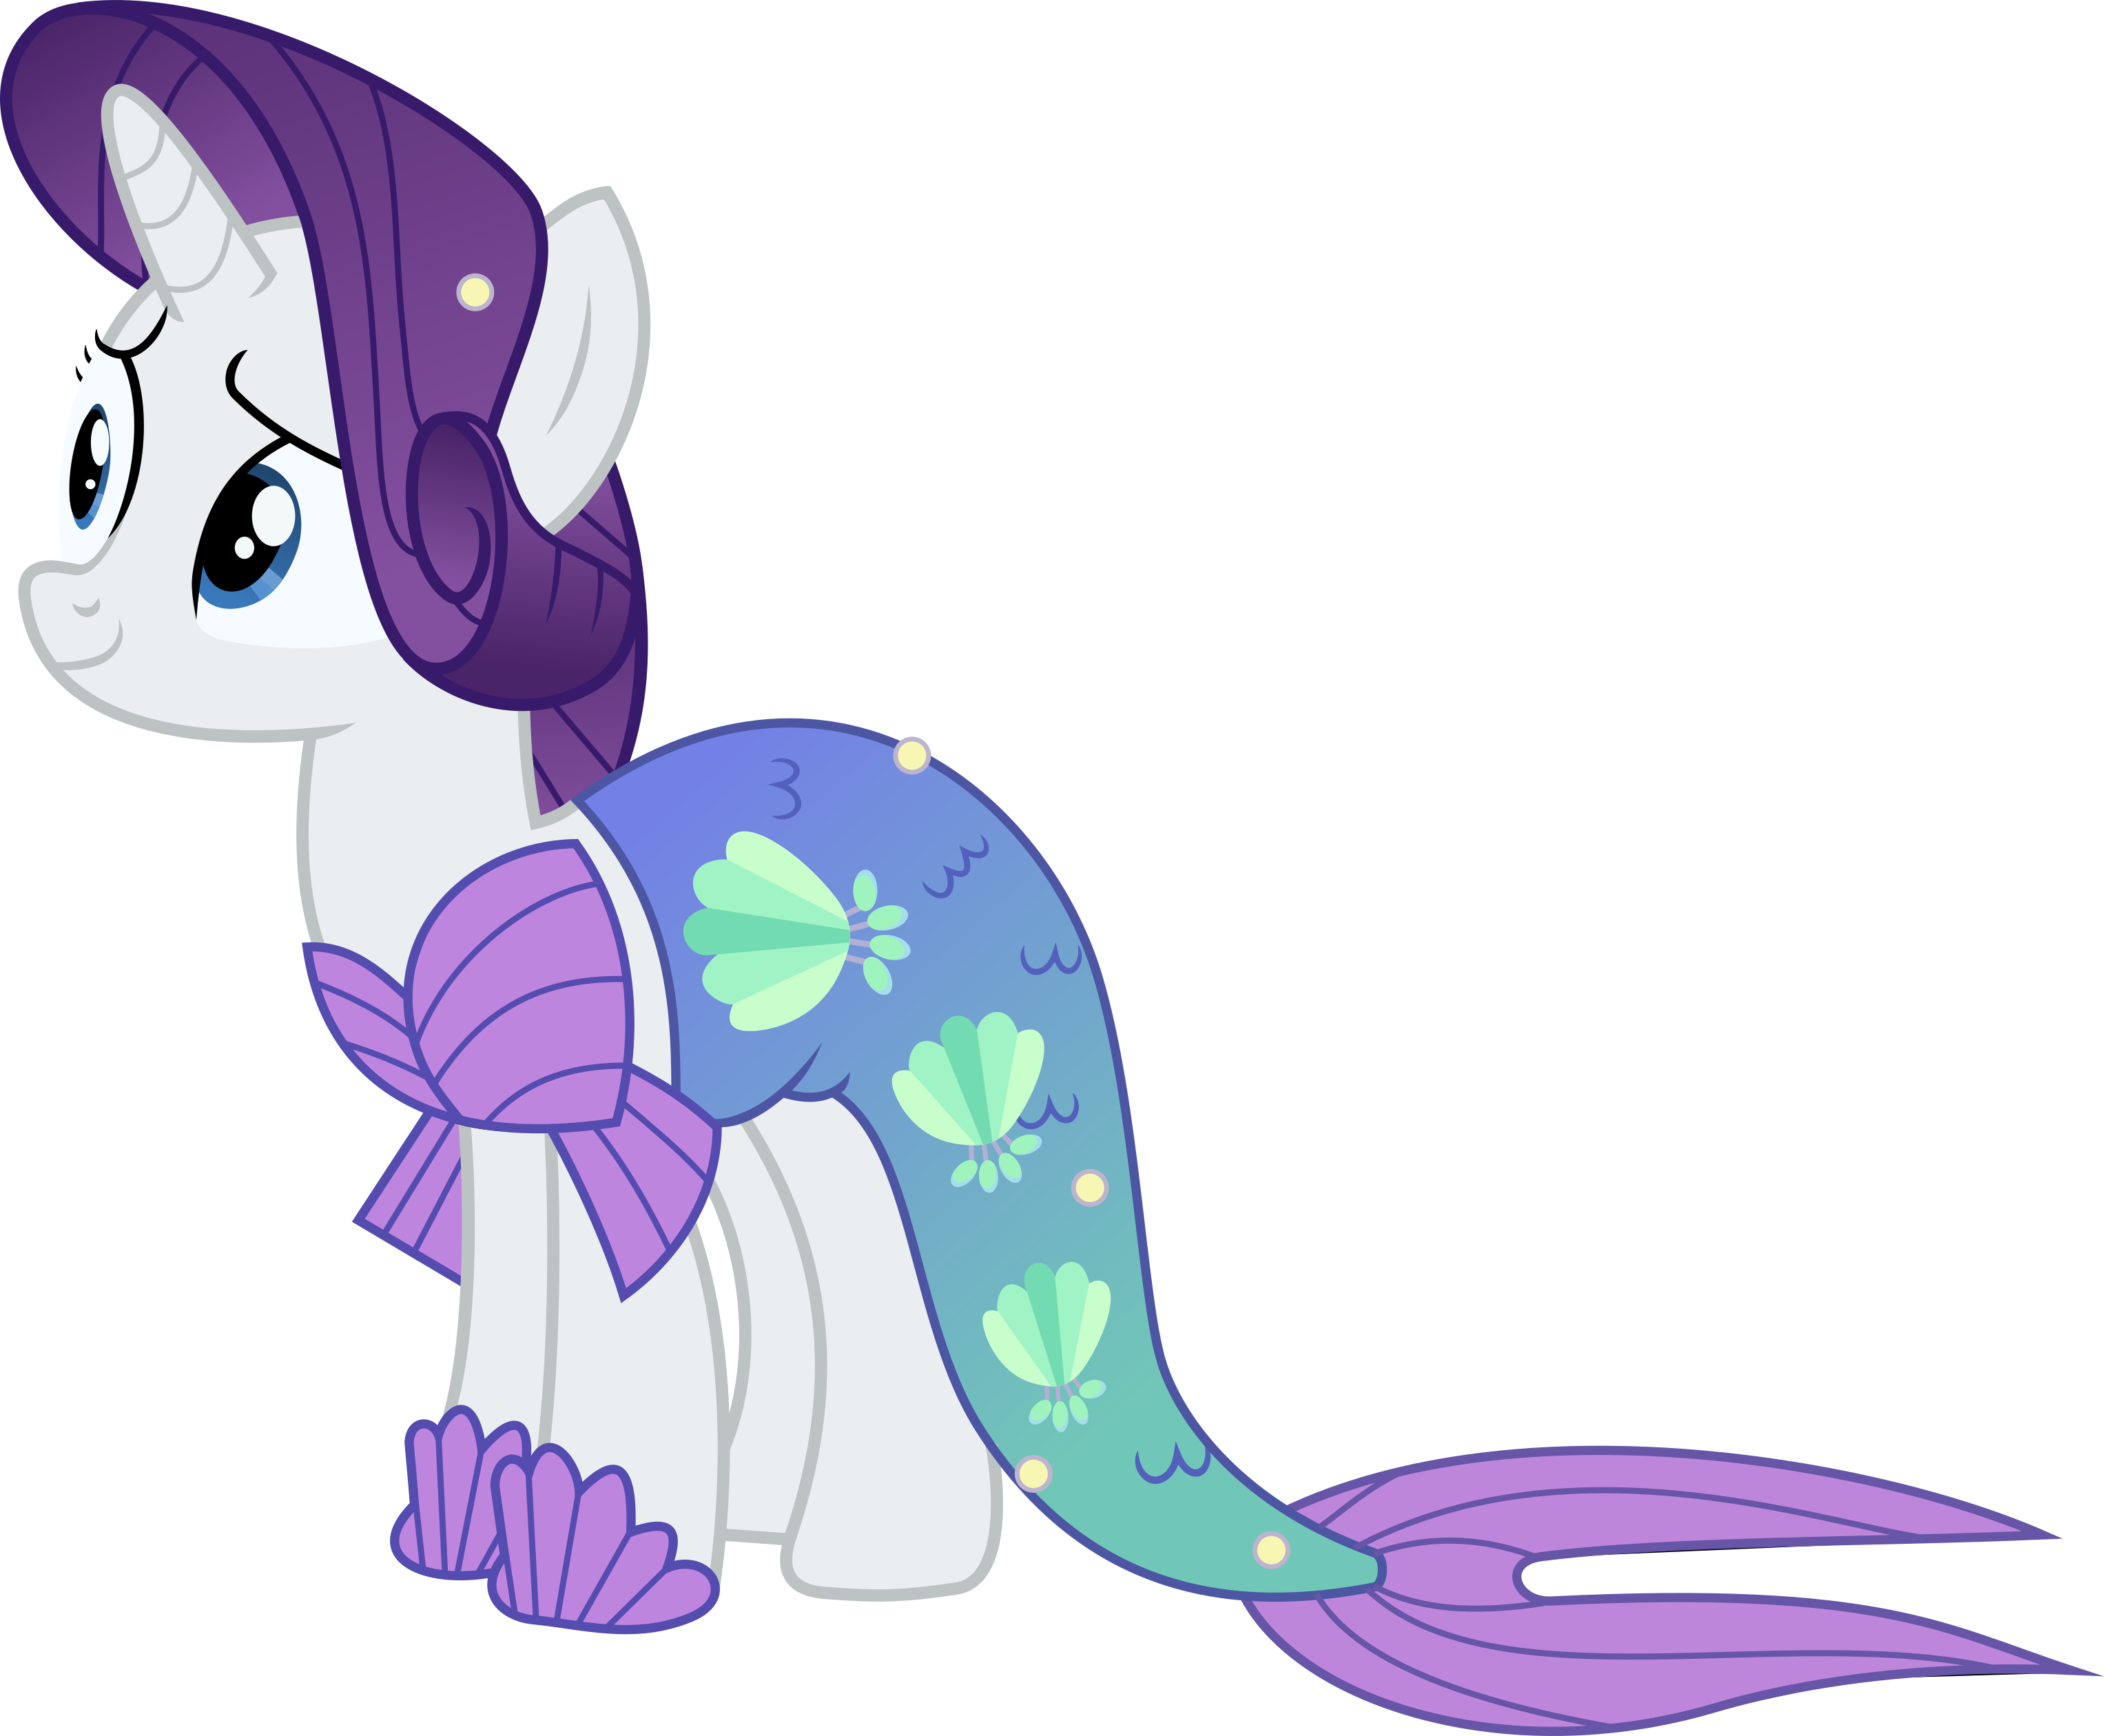 Rarity Mermaid by TimeLordOmega on DeviantArt